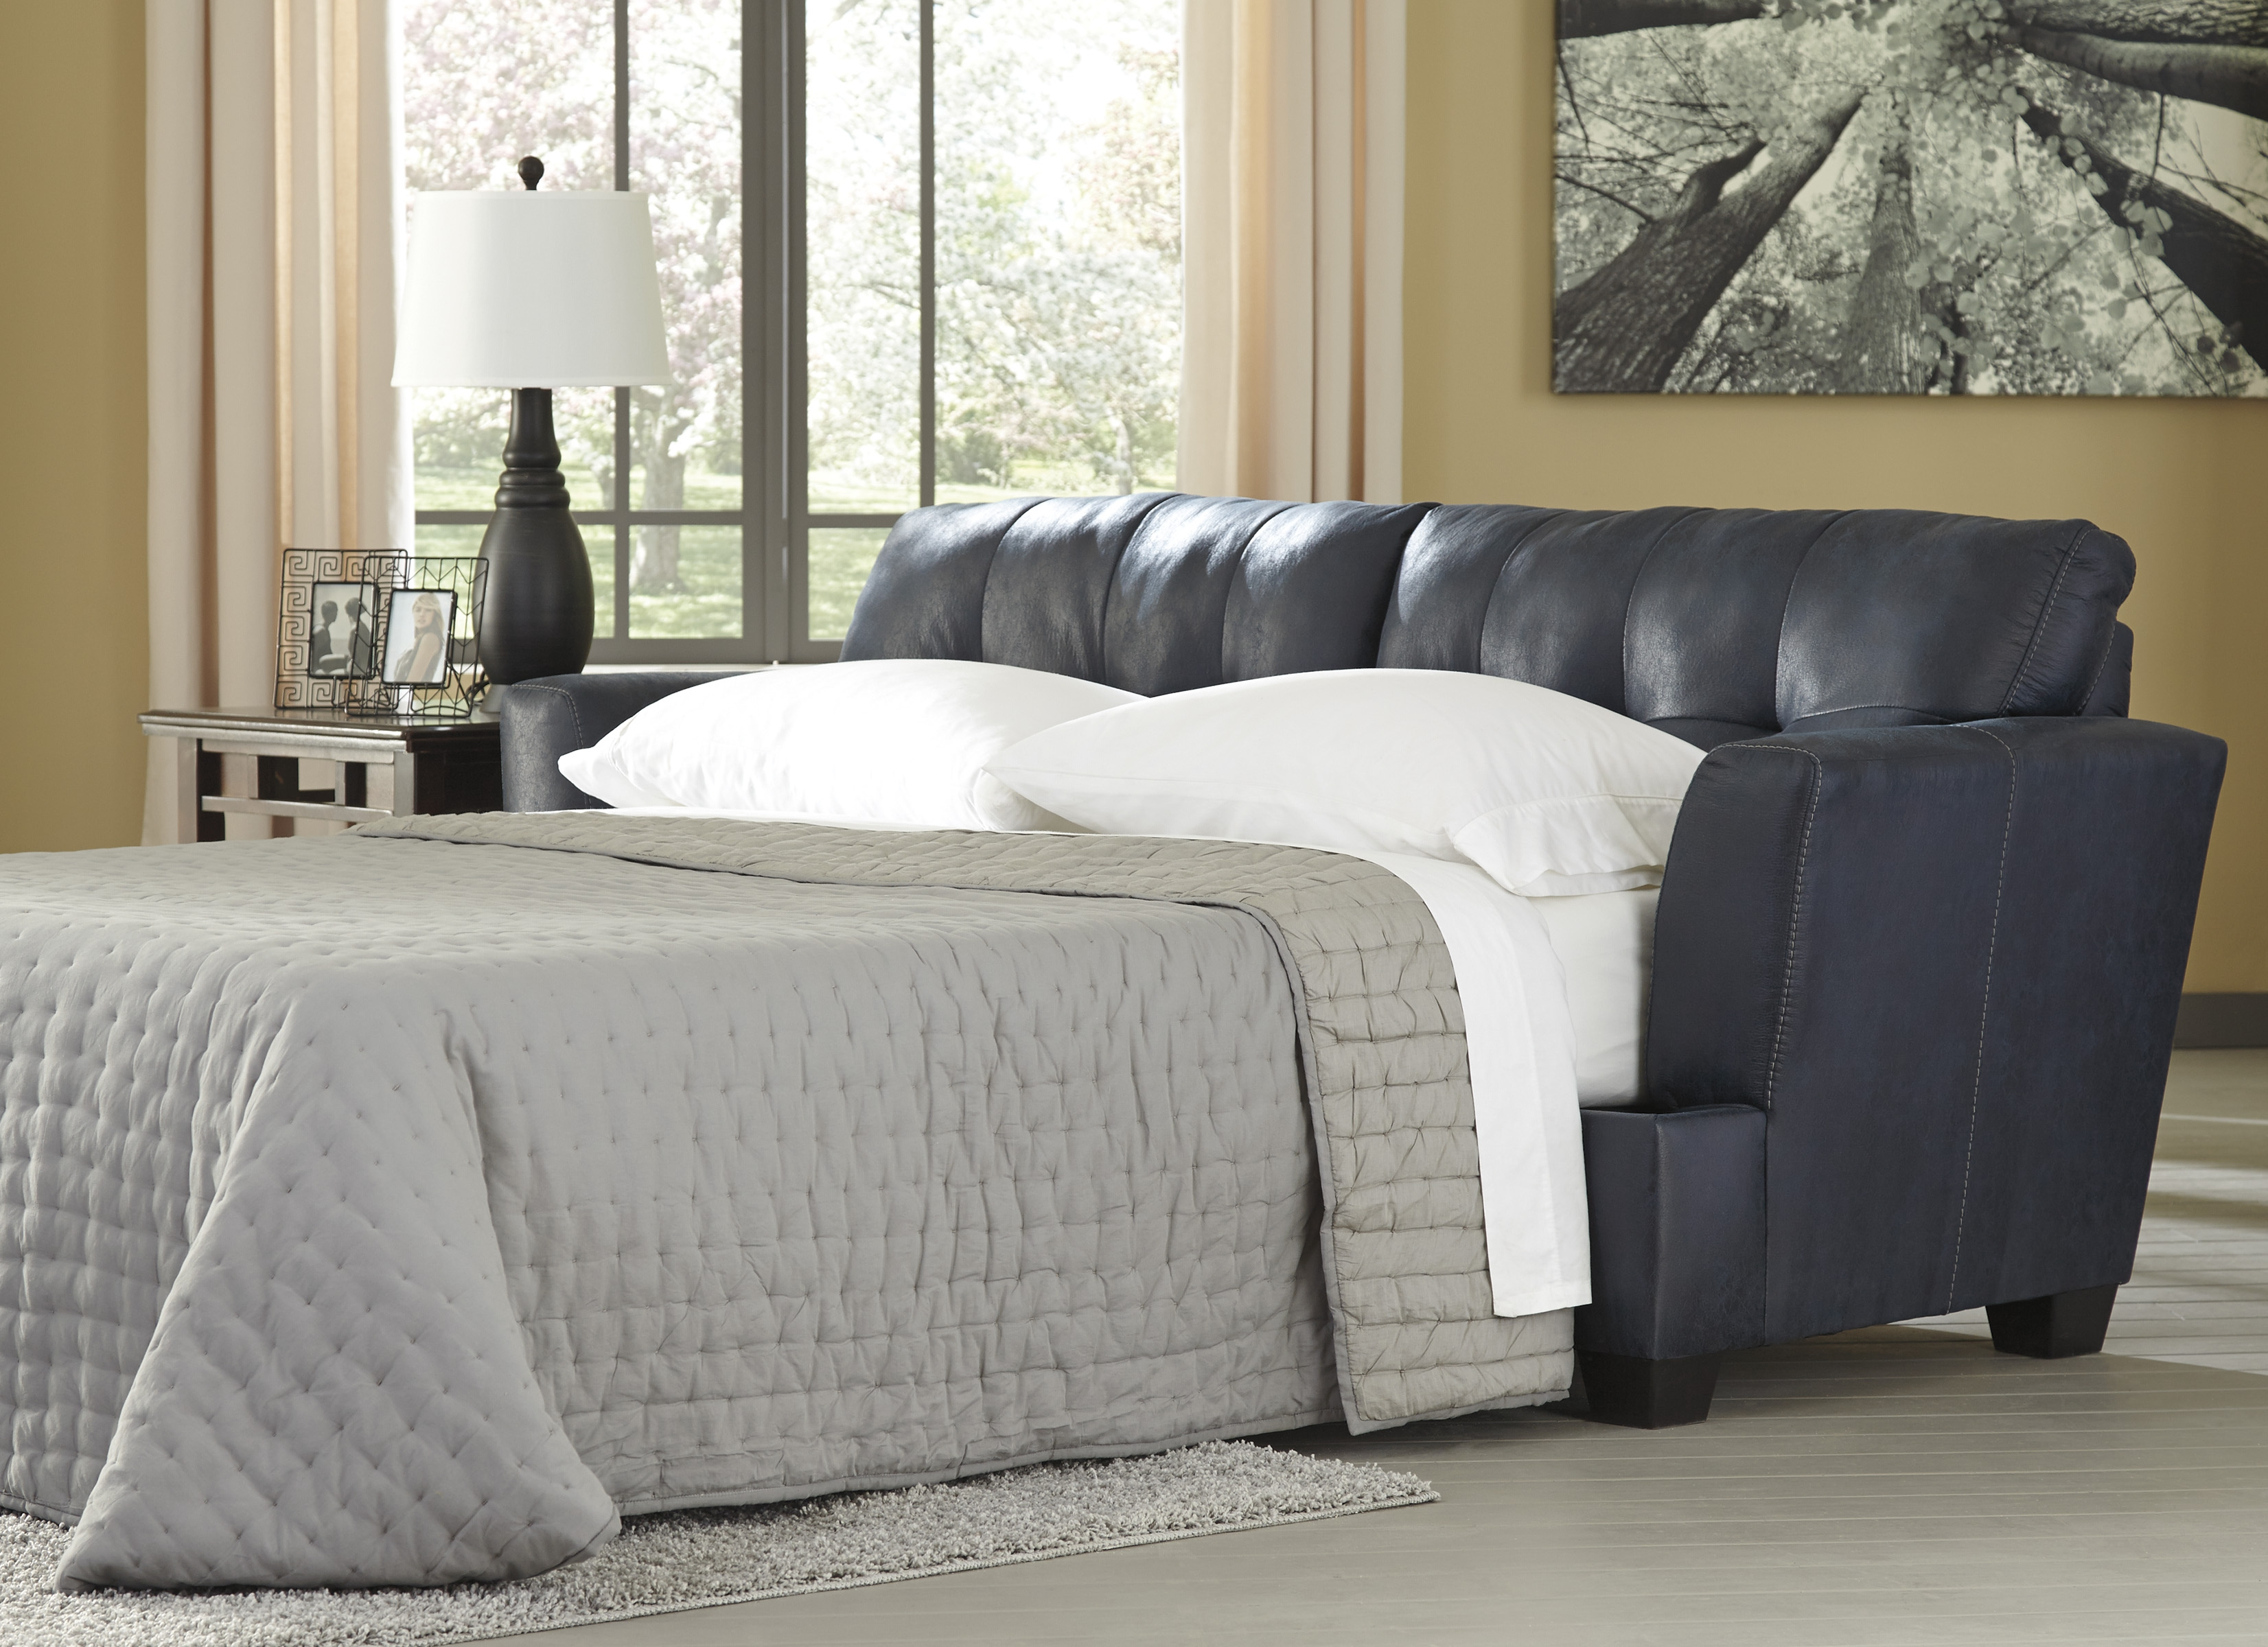 Ashley Furniture Inmon Navy Queen Sofa Sleeper The Classy Home